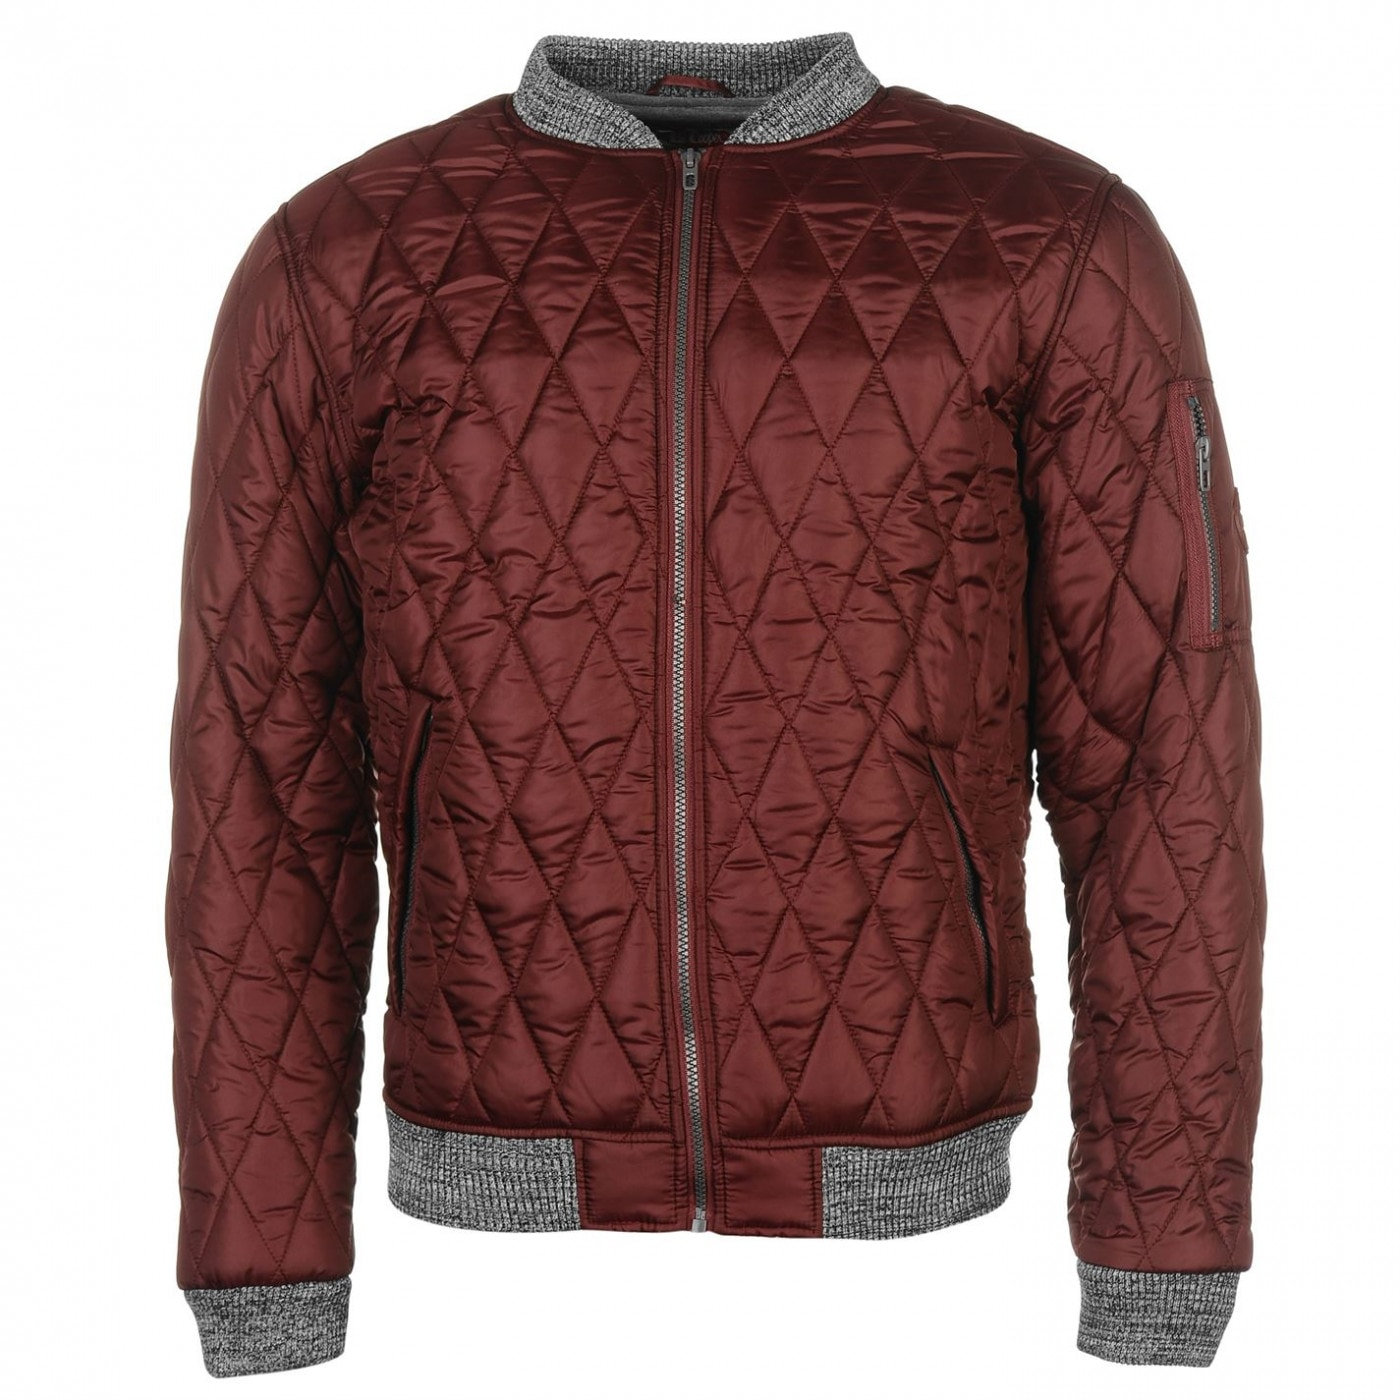 7a04eccd3 Lee Cooper Quilted Bomber Jacket Mens - FACTCOOL